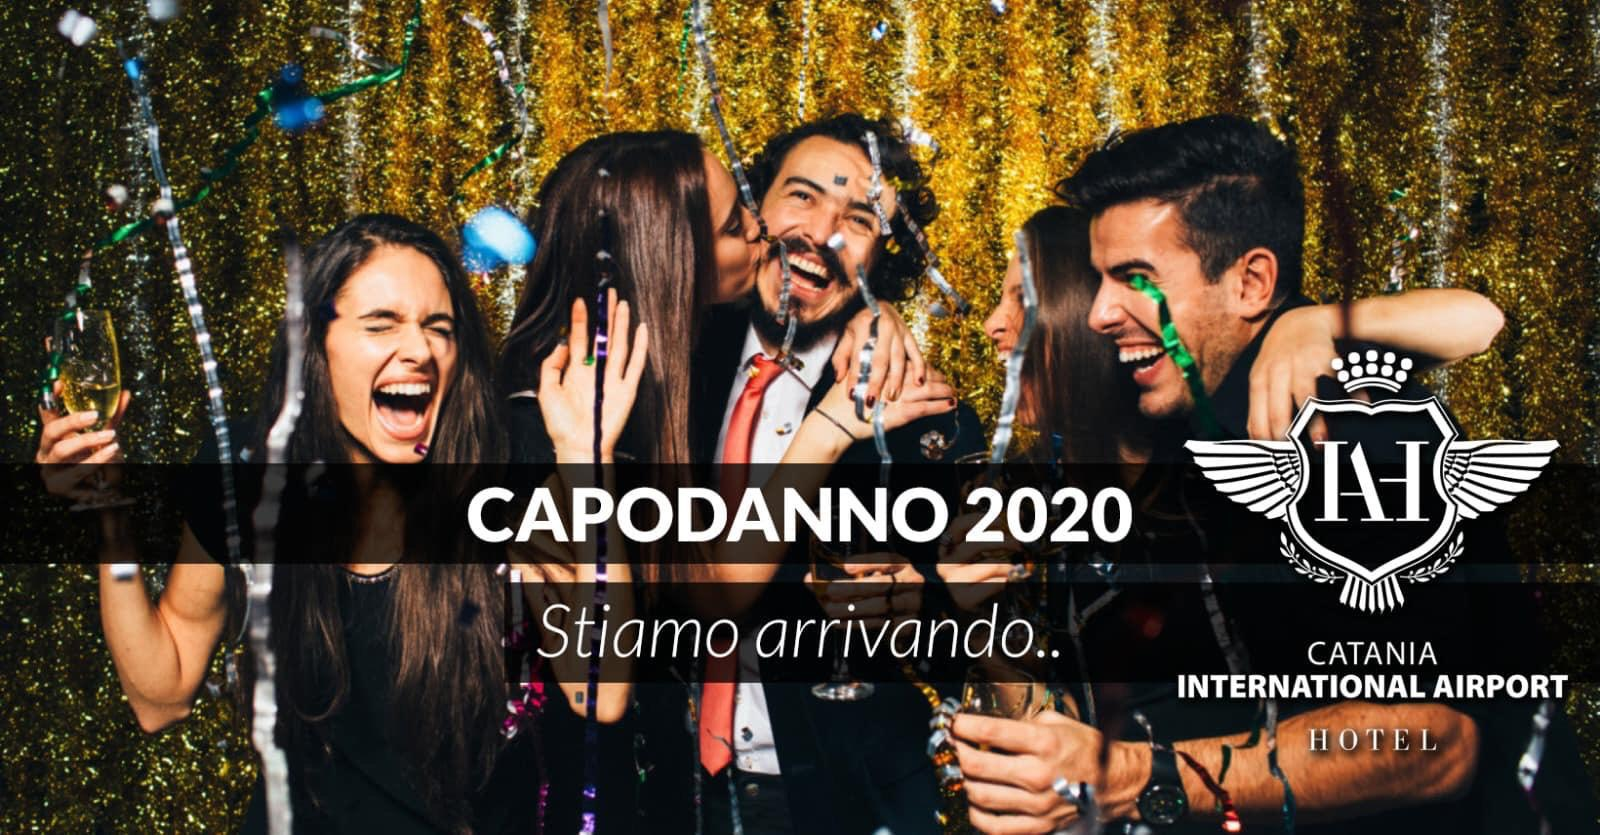 Capodanno 2020 al Catania International Airport Hotel